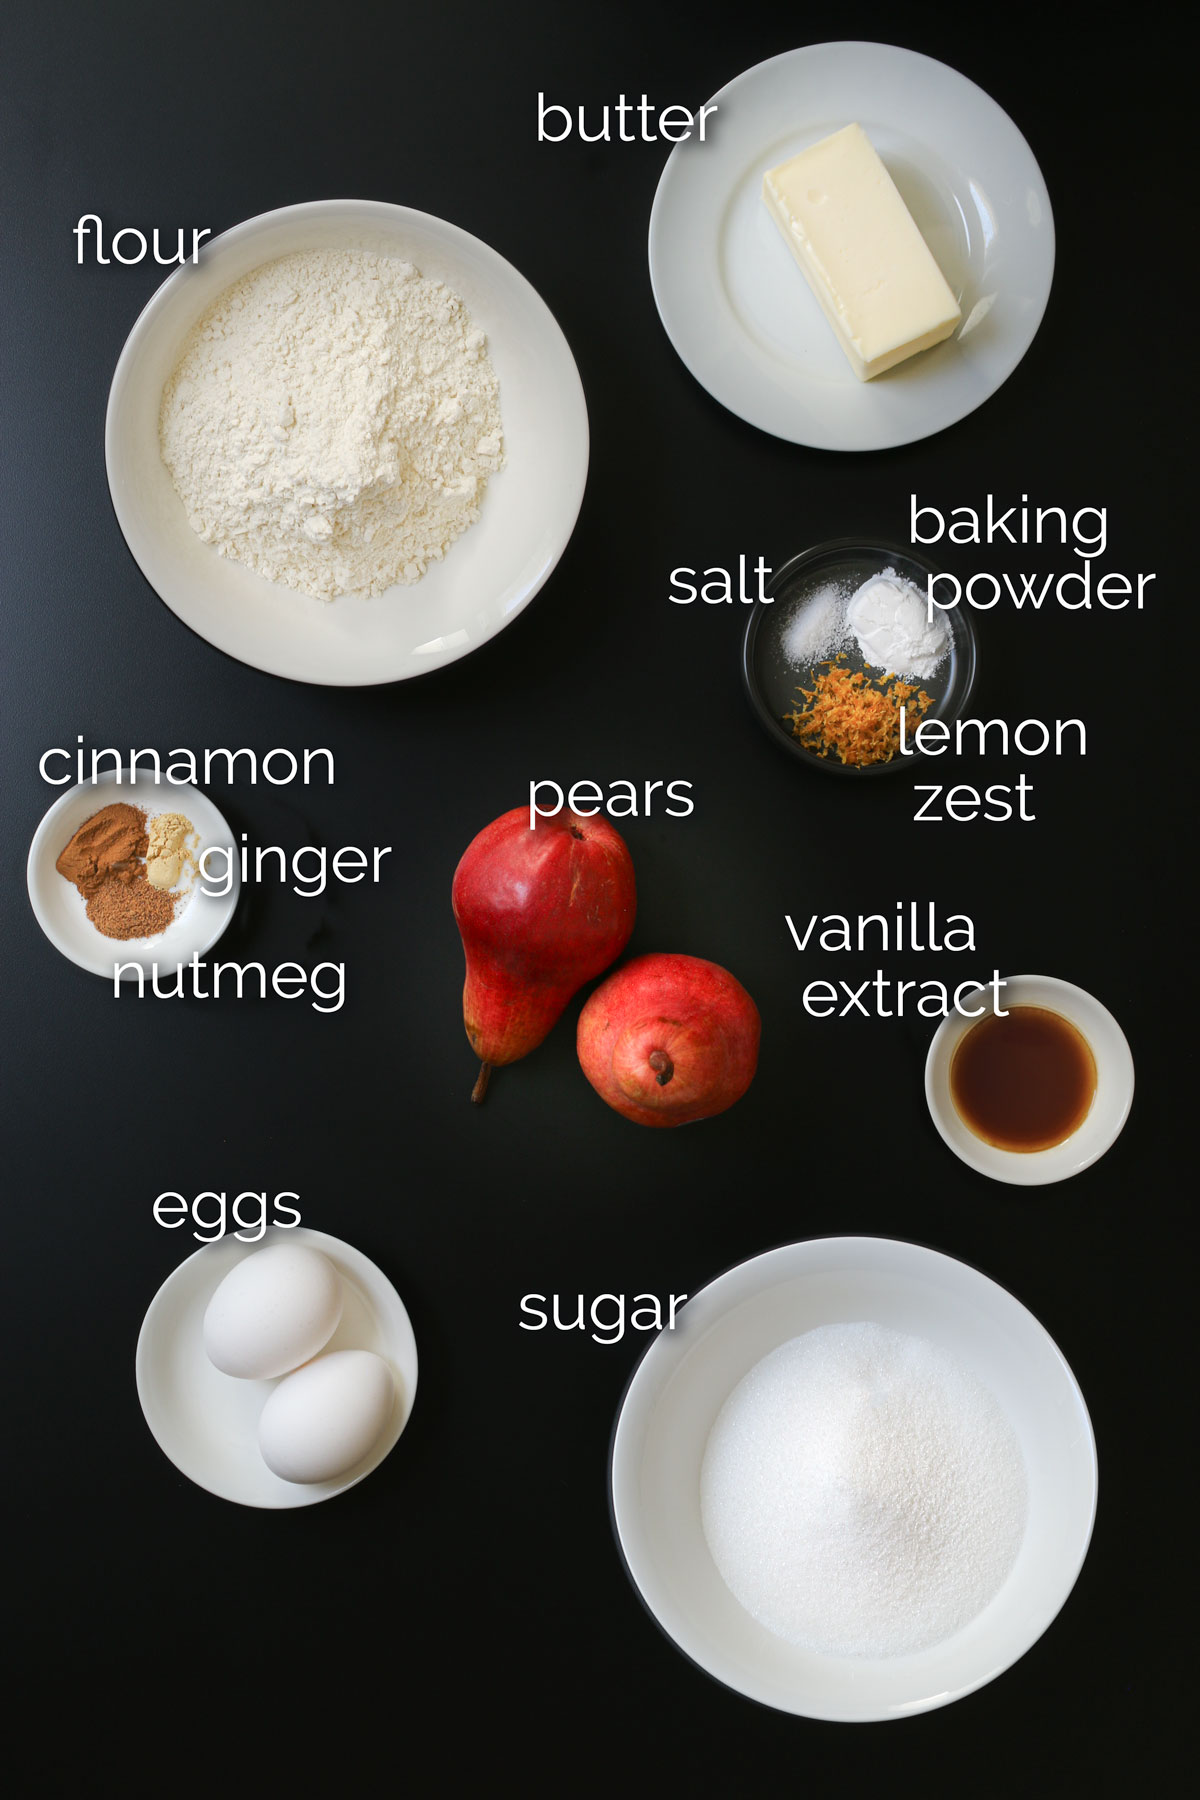 pear cake ingredients laid out on black table top.